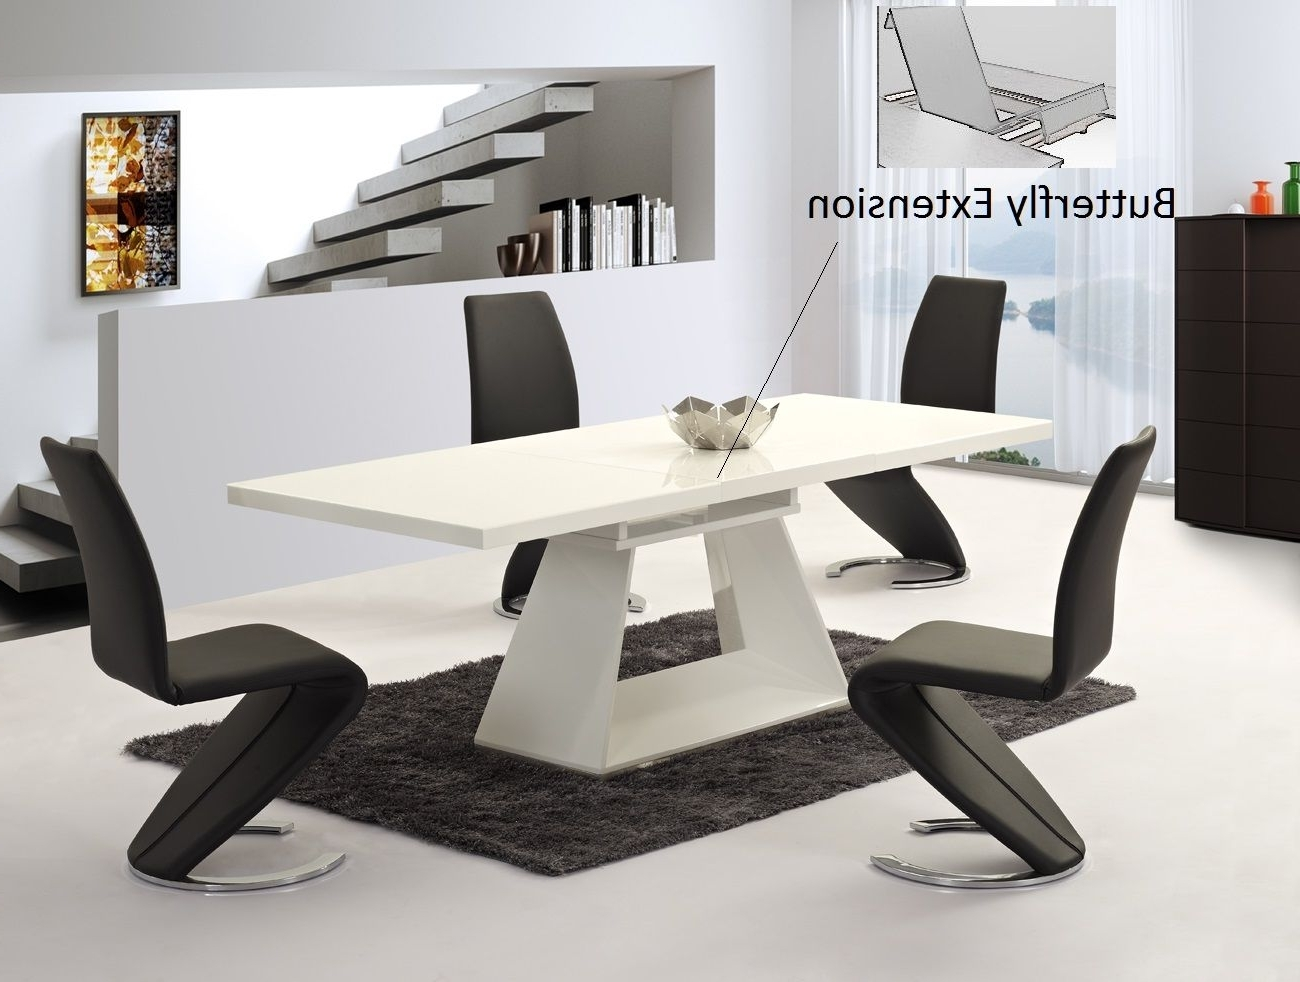 Black High Gloss Dining Tables Intended For 2018 Ga Silvano Extending White Gloss 160 220Cm Dining Table & Luciano Chairs (Gallery 9 of 25)